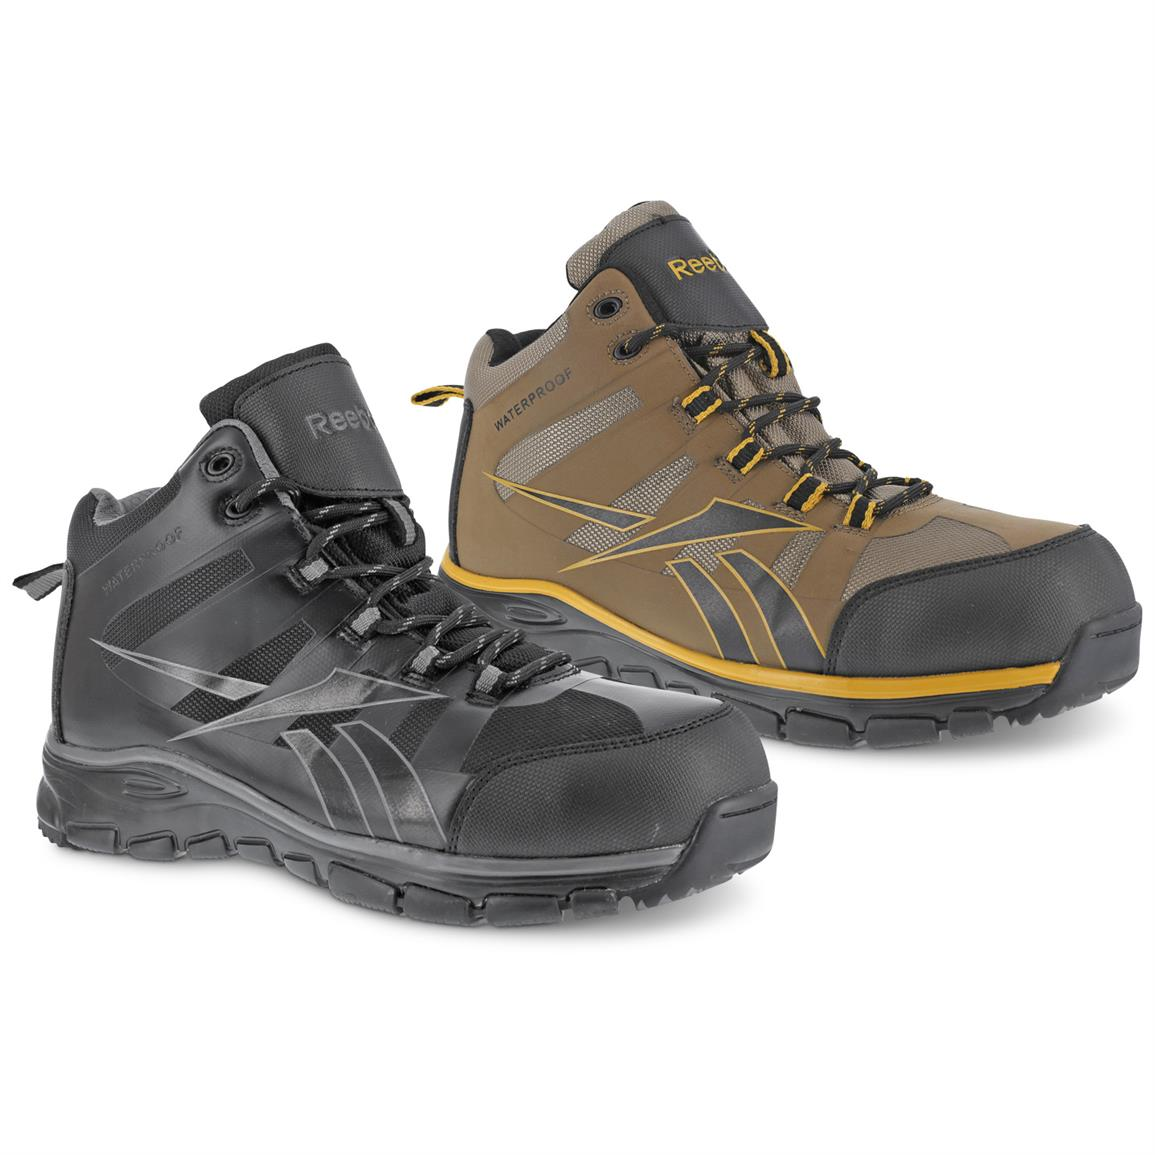 Reebok Men's Arion Composite Toe Waterproof Hiking Boots